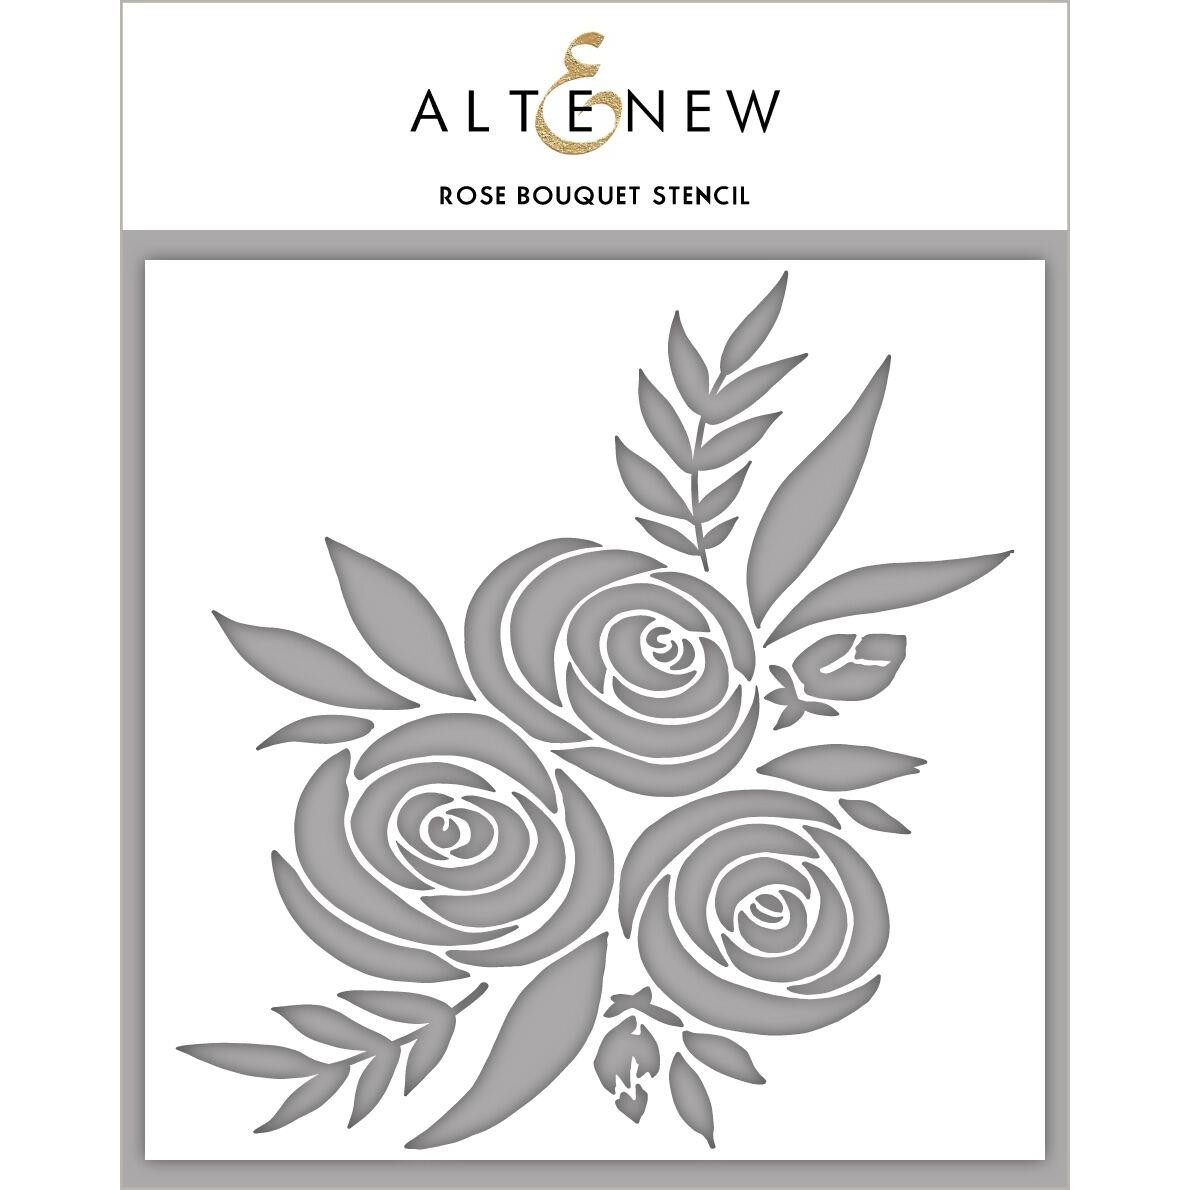 Rose Bouquet, Altenew Stencils - 737787255902